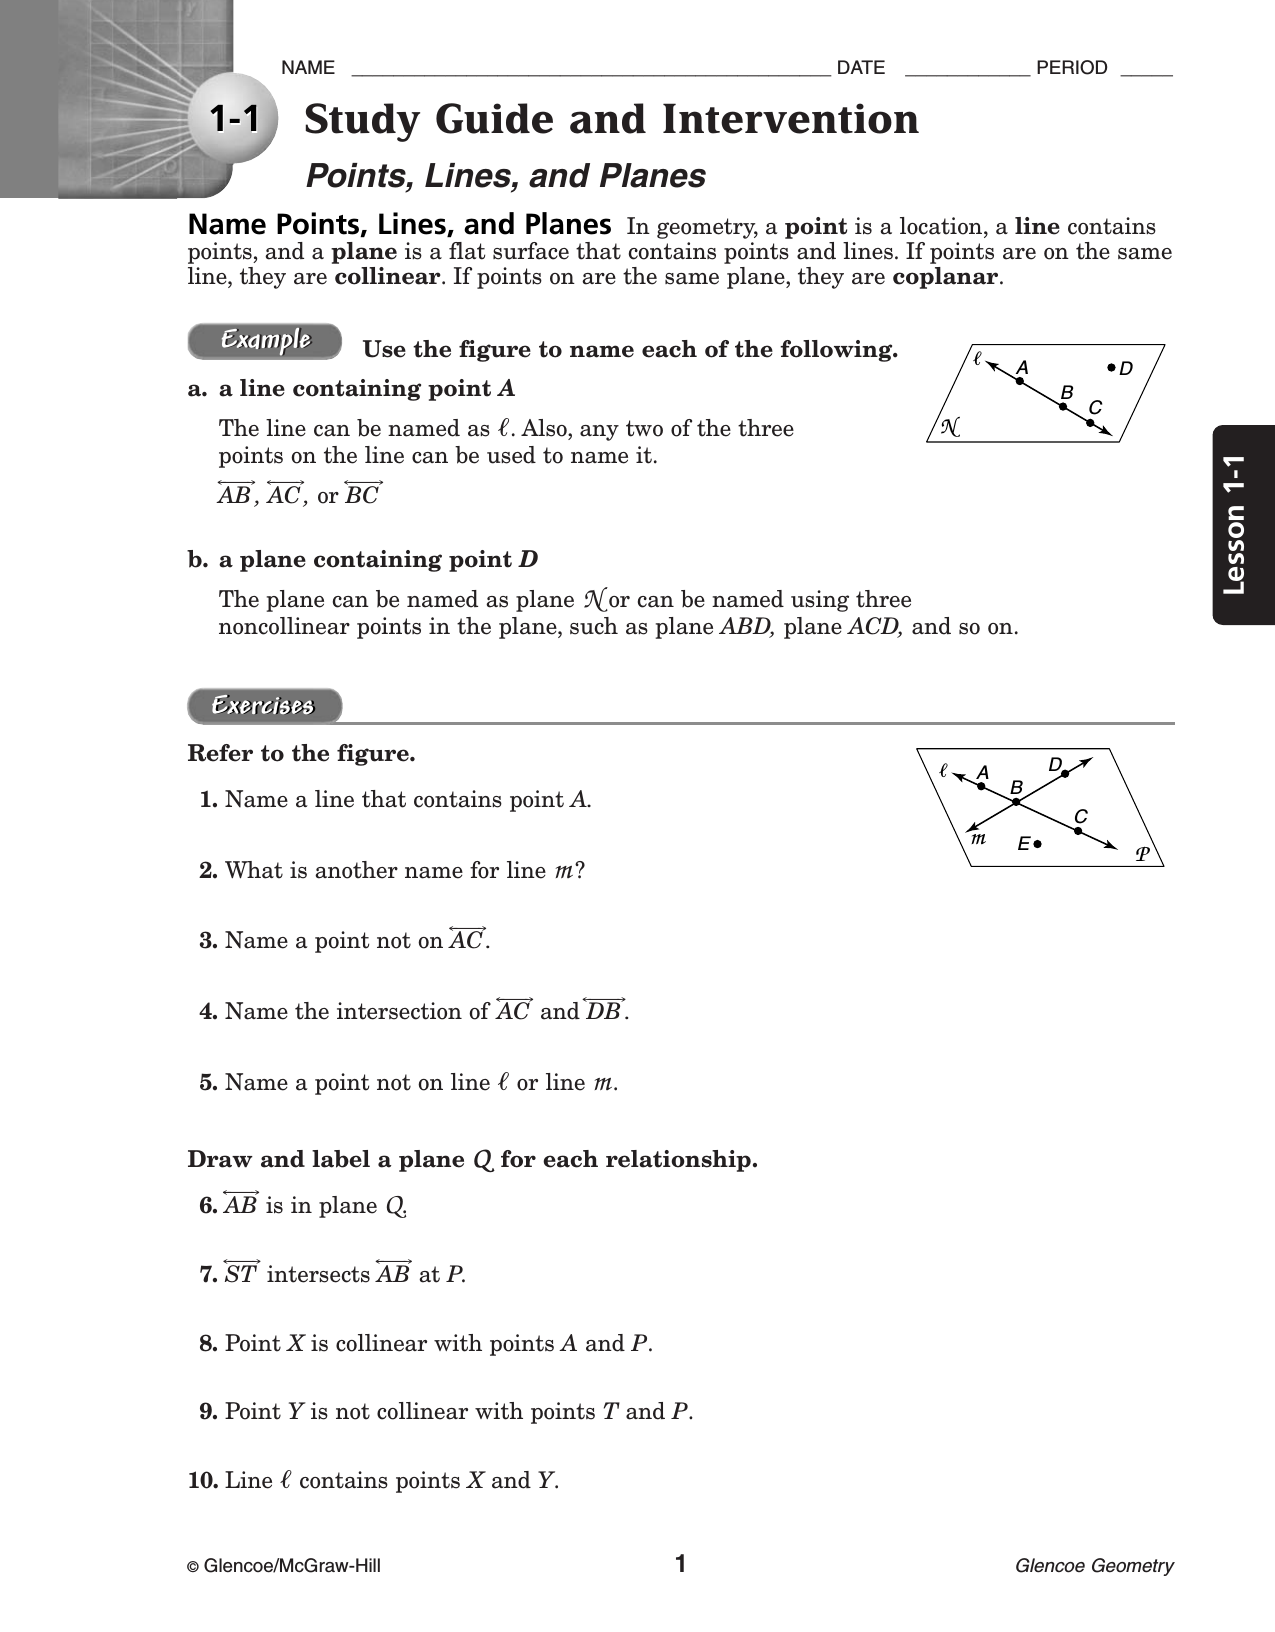 Glencoe Algebra 1 Study Guide And Intervention Answers Ukrobstep – Glencoe Geometry Worksheet Answers